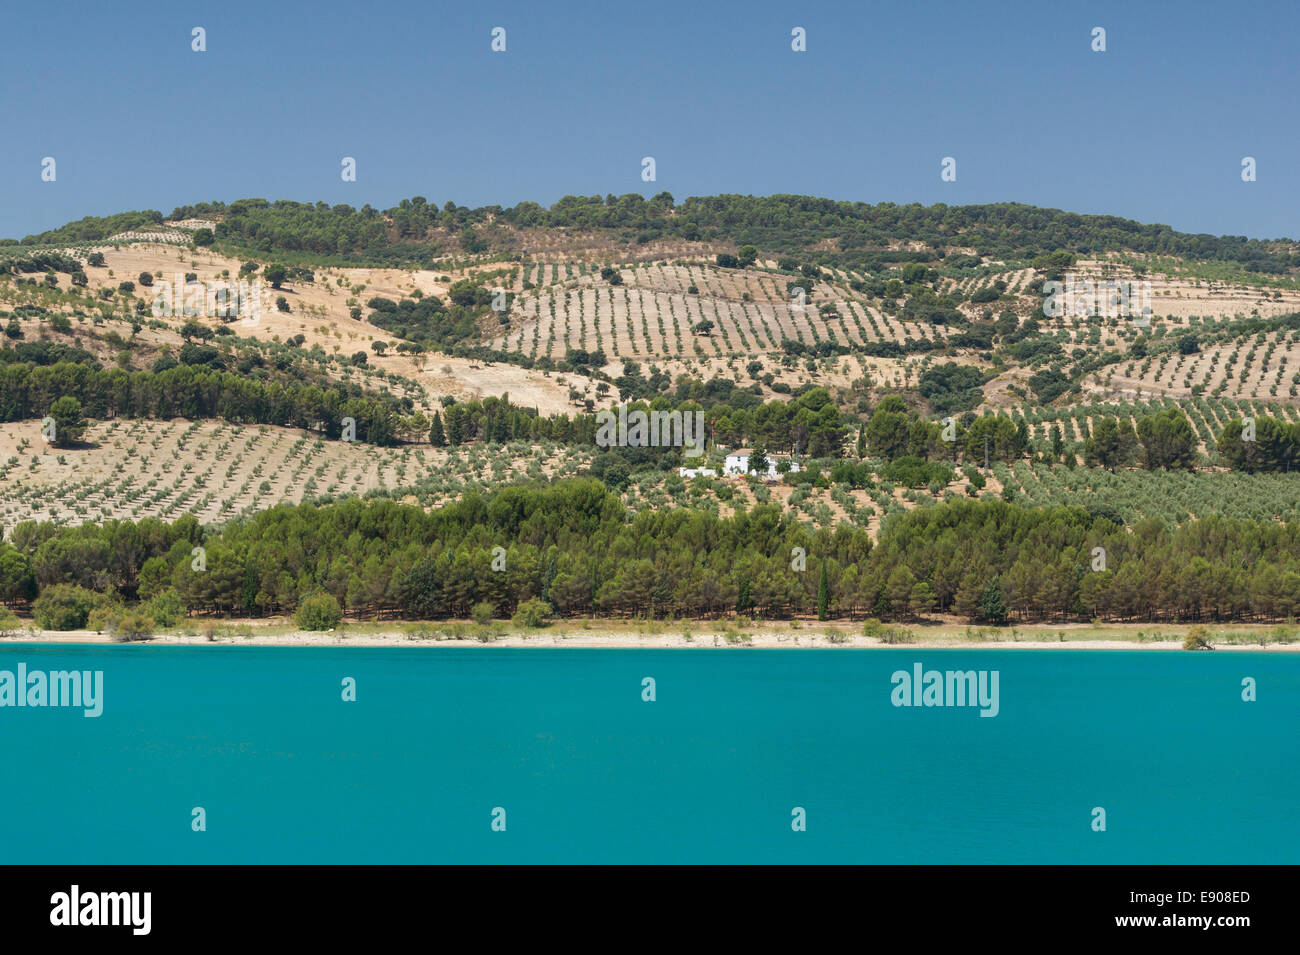 Olive groves and almond groves near Arenas del Rey, behind the lake of los Bermejales, Andalusia, Spain. - Stock Image